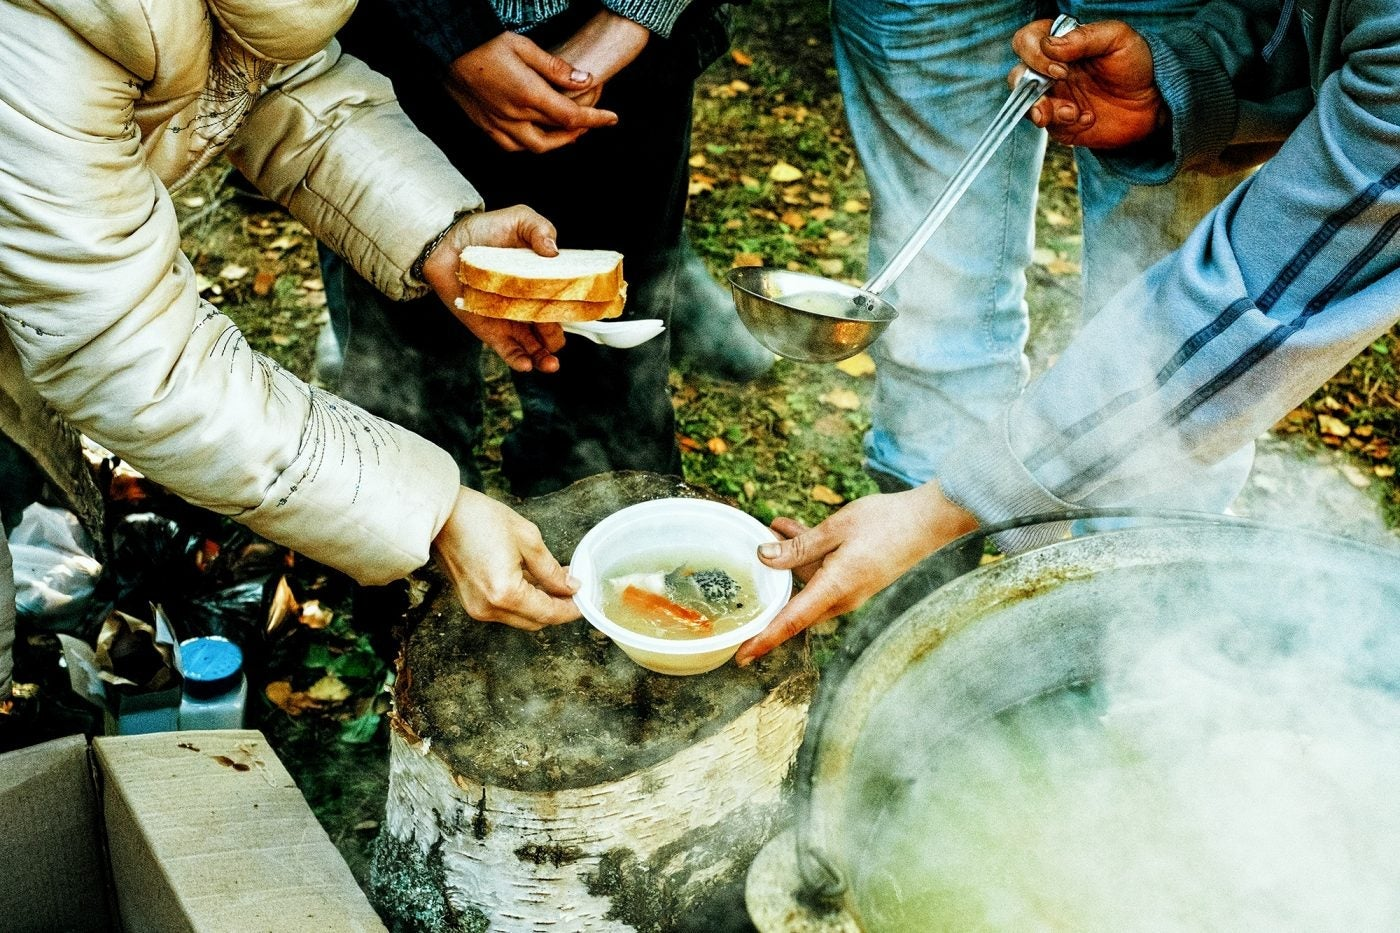 Fall camping recipes to cook at the campsite for a halloween feast.